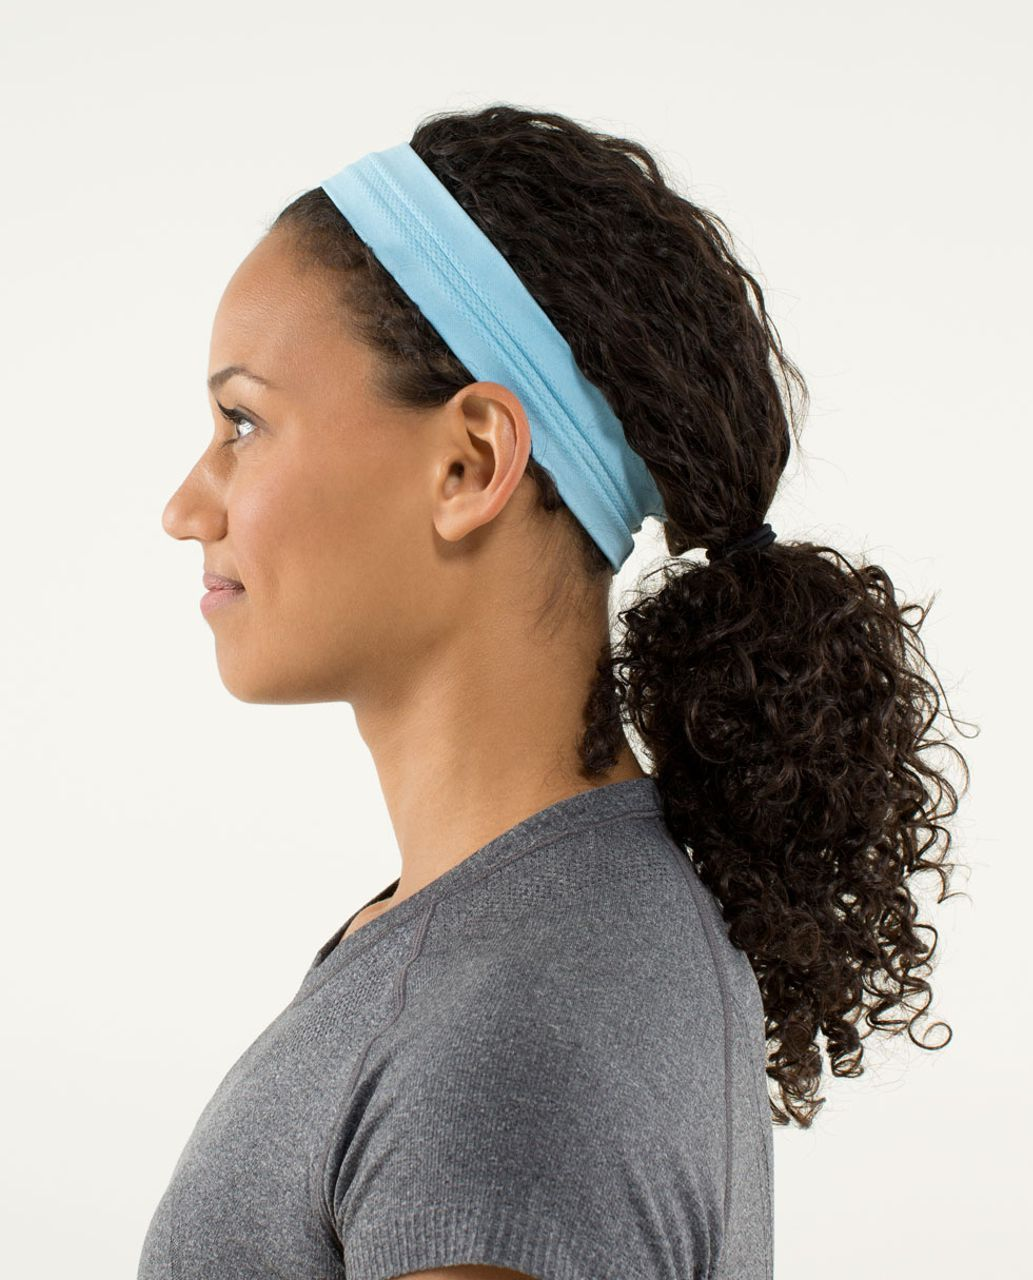 35da9b0f Lululemon Swiftly Headband - Heathered Blue Moon - lulu fanatics